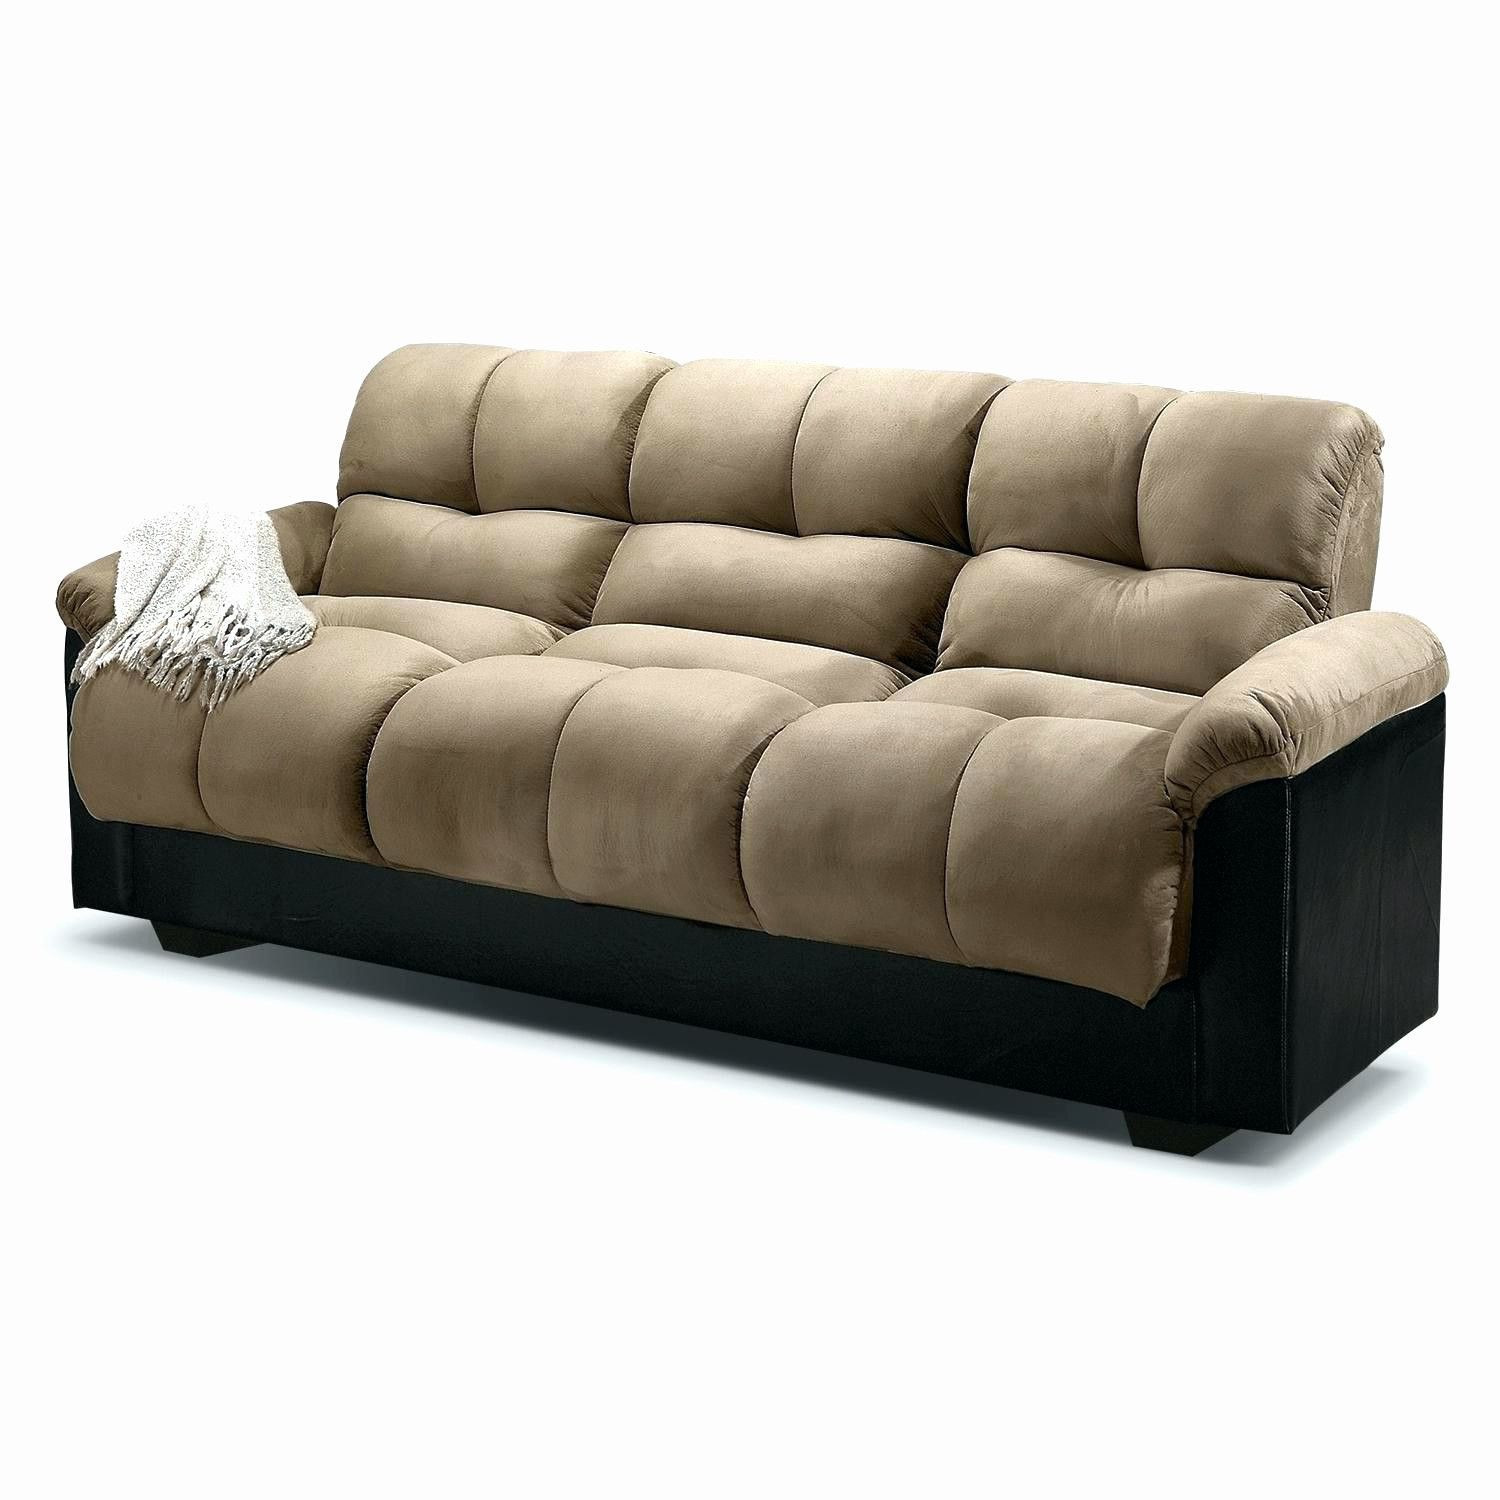 Best ideas about Sofa City Springfield Mo . Save or Pin Sofa Cama Matrimonial Muebles Dico Now.